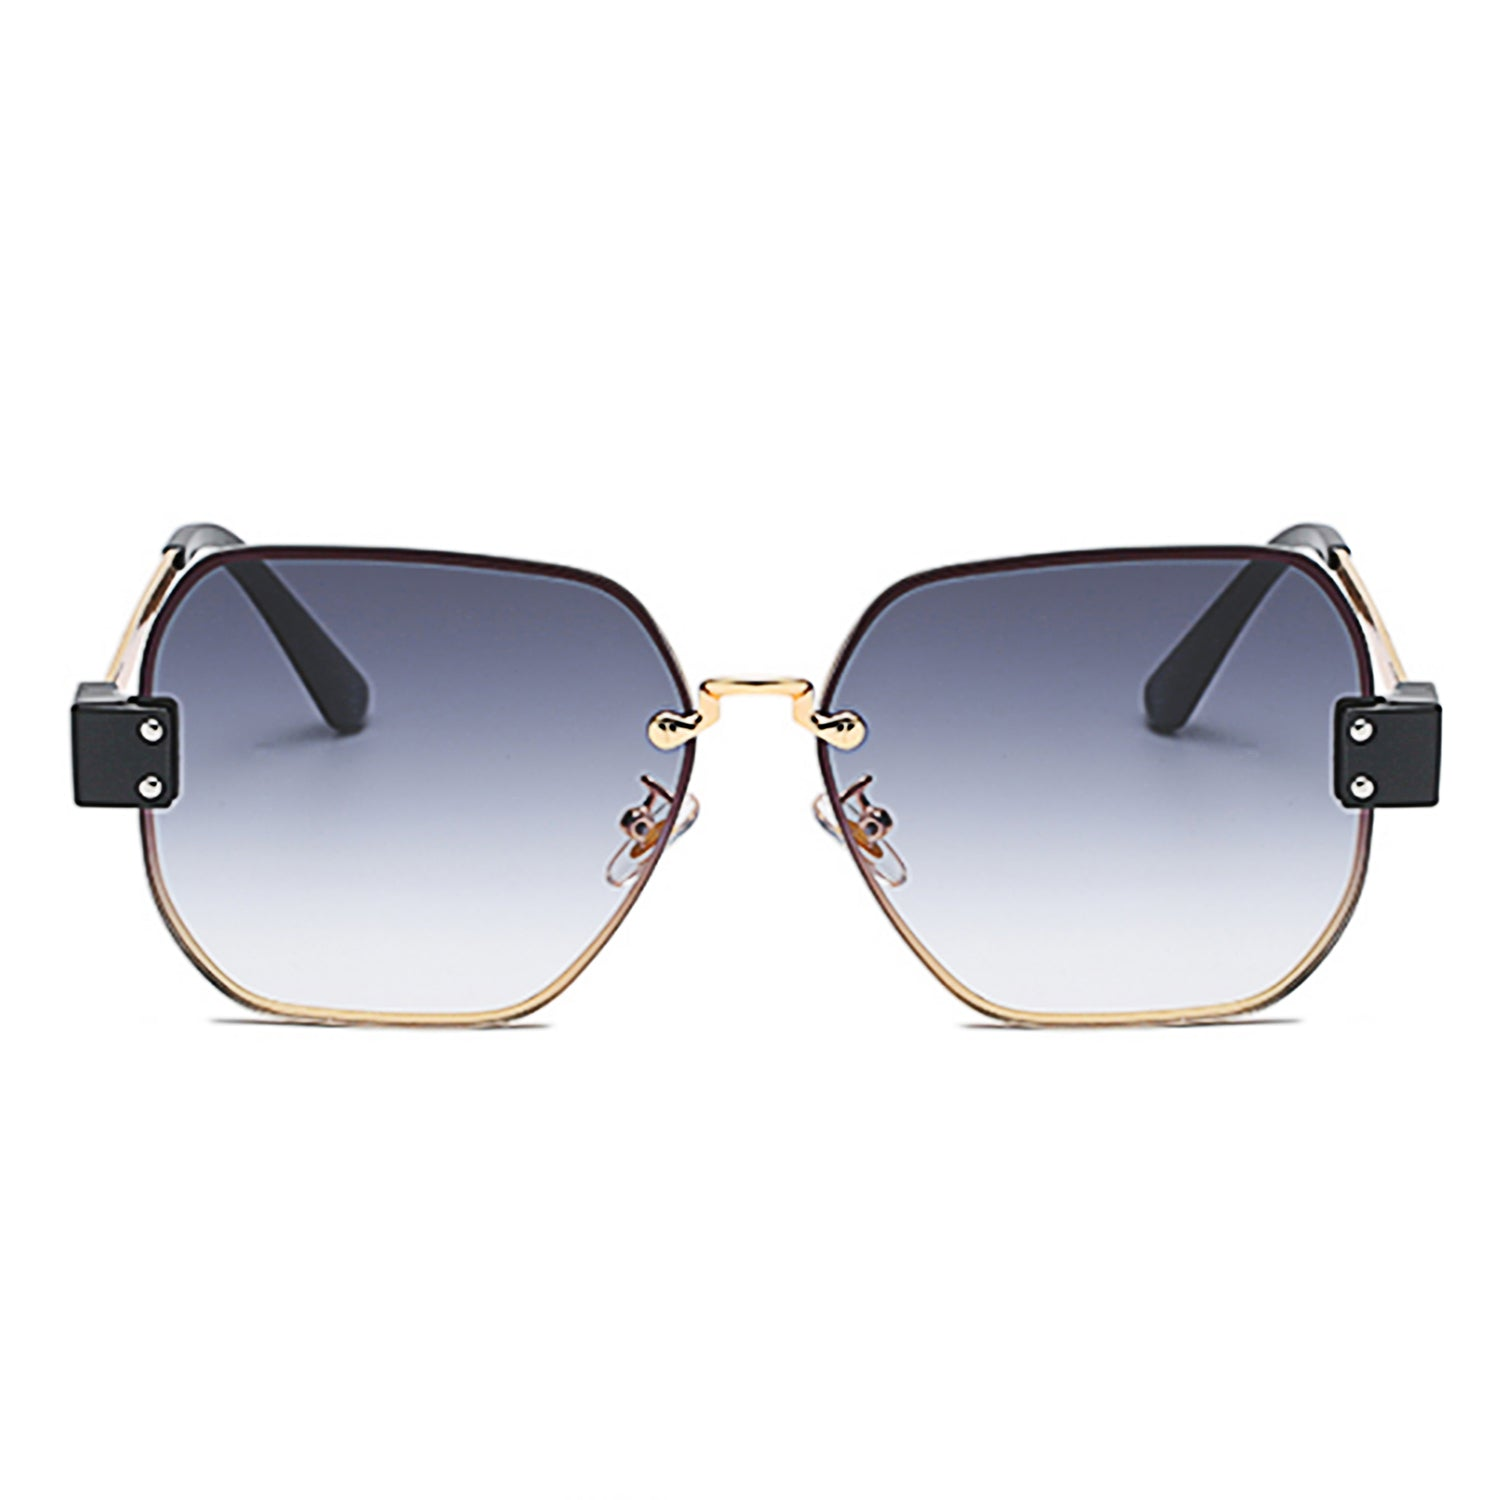 J3004 - Retro Square Geometric Metal Fashion Designer Sunglasses